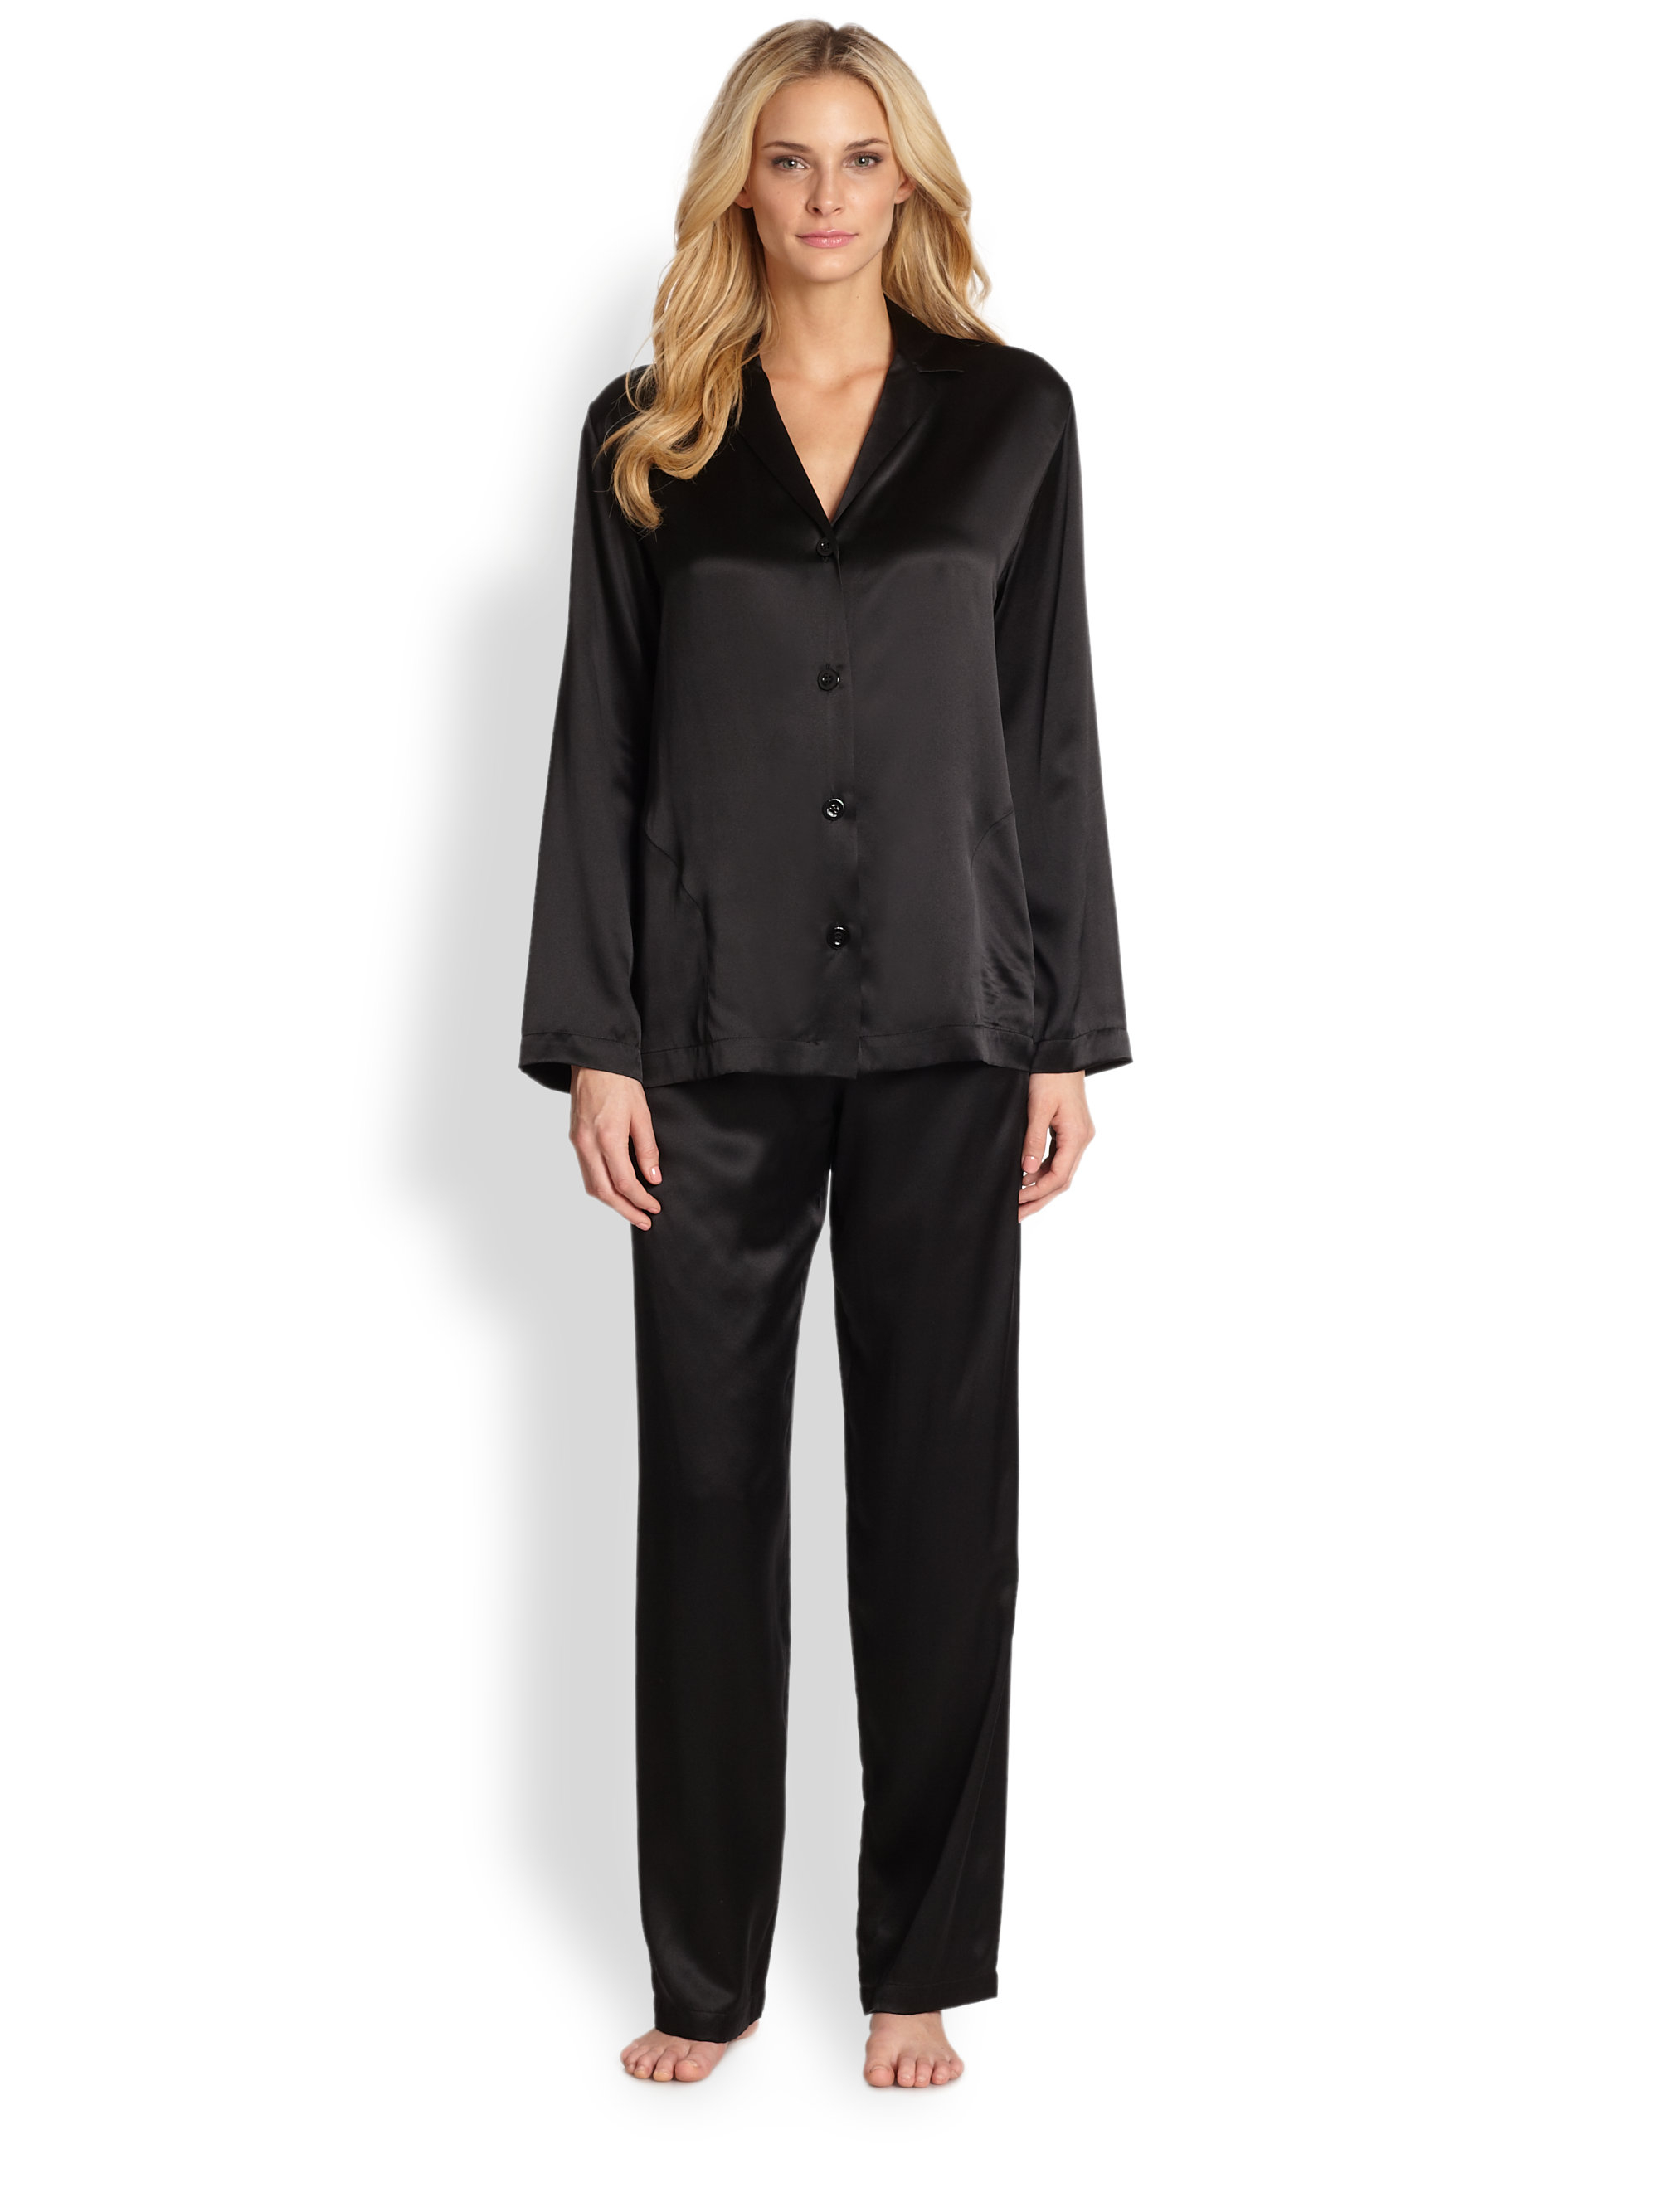 Find great deals on eBay for black pajamas. Shop with confidence.